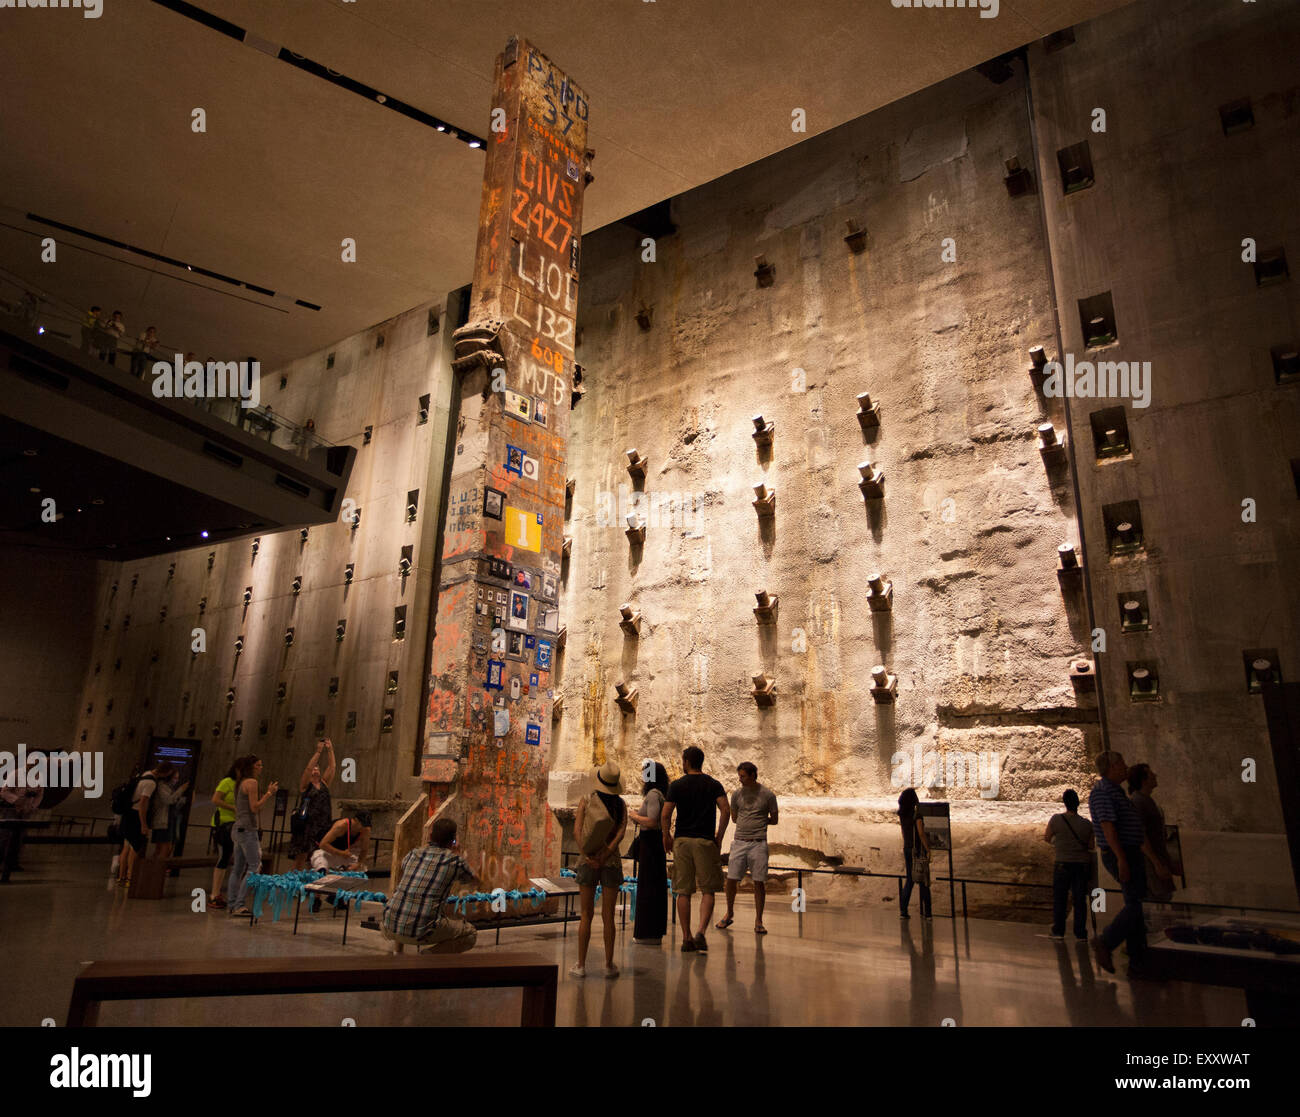 911 september 11 national museum memorial people coloumn steel foundation wall concrete bathtub support attraction - Stock Image